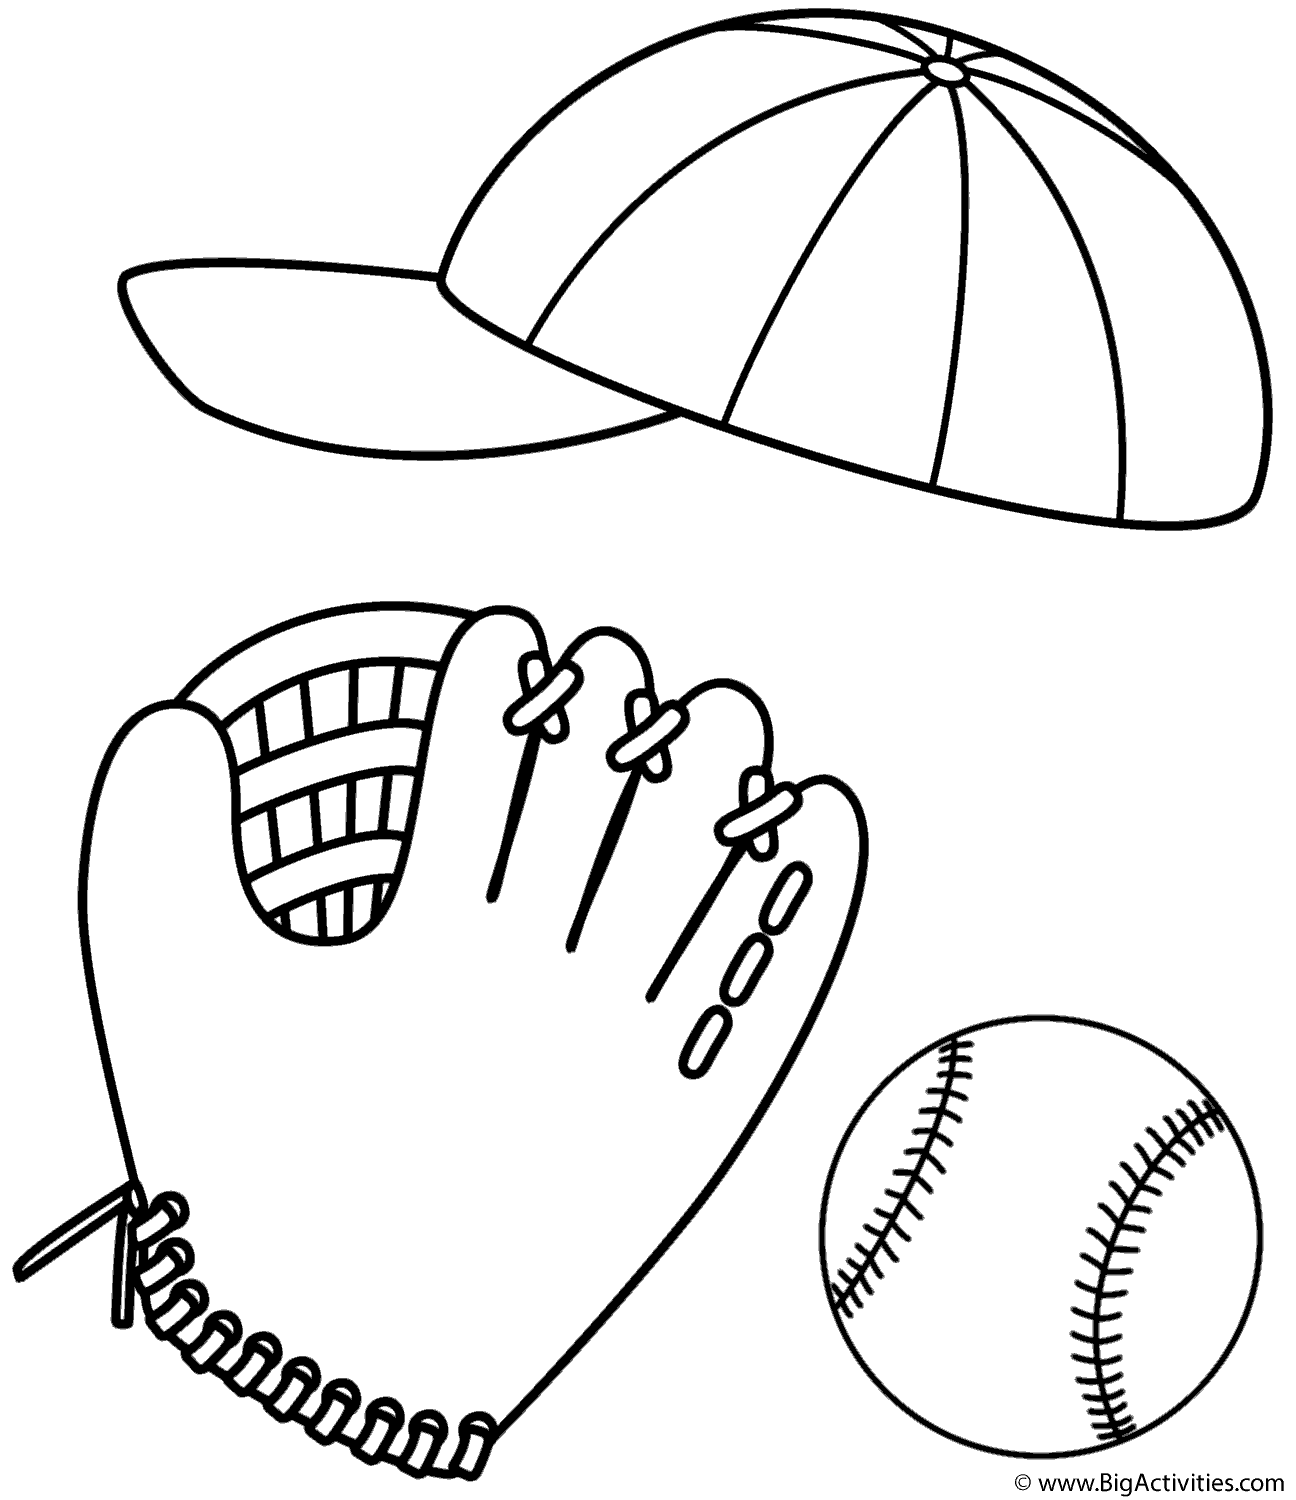 Baseball Cap Glove And Ball